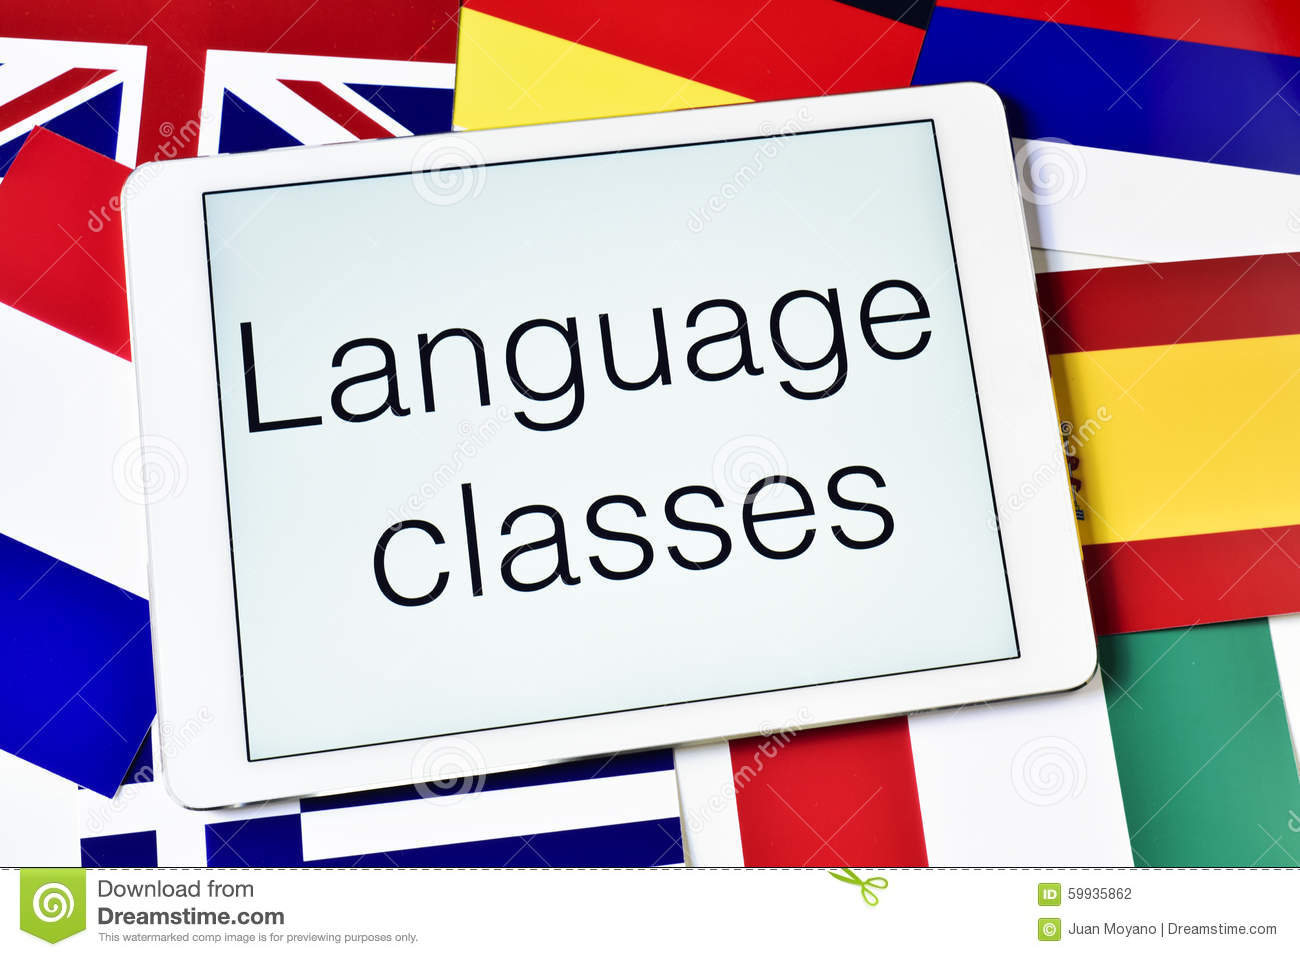 Mongolian Language Classes in Ghaziabad | Mongolian Language Course in Ghaziabad